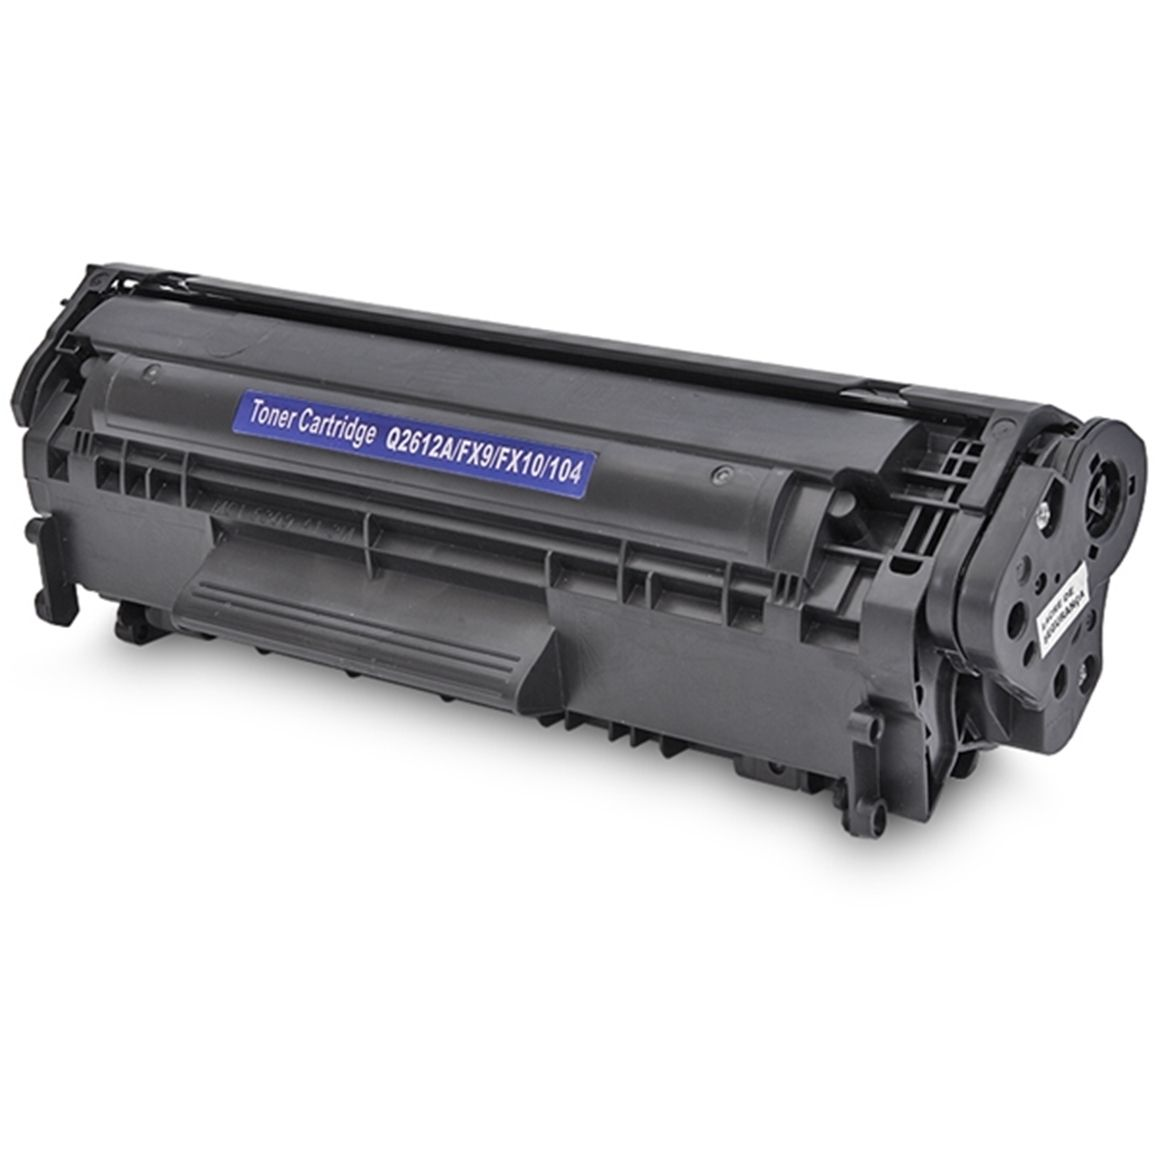 TONER HP Q2612A 2612a 12a HP 1010 -  COMPATIVEL BYQUALY